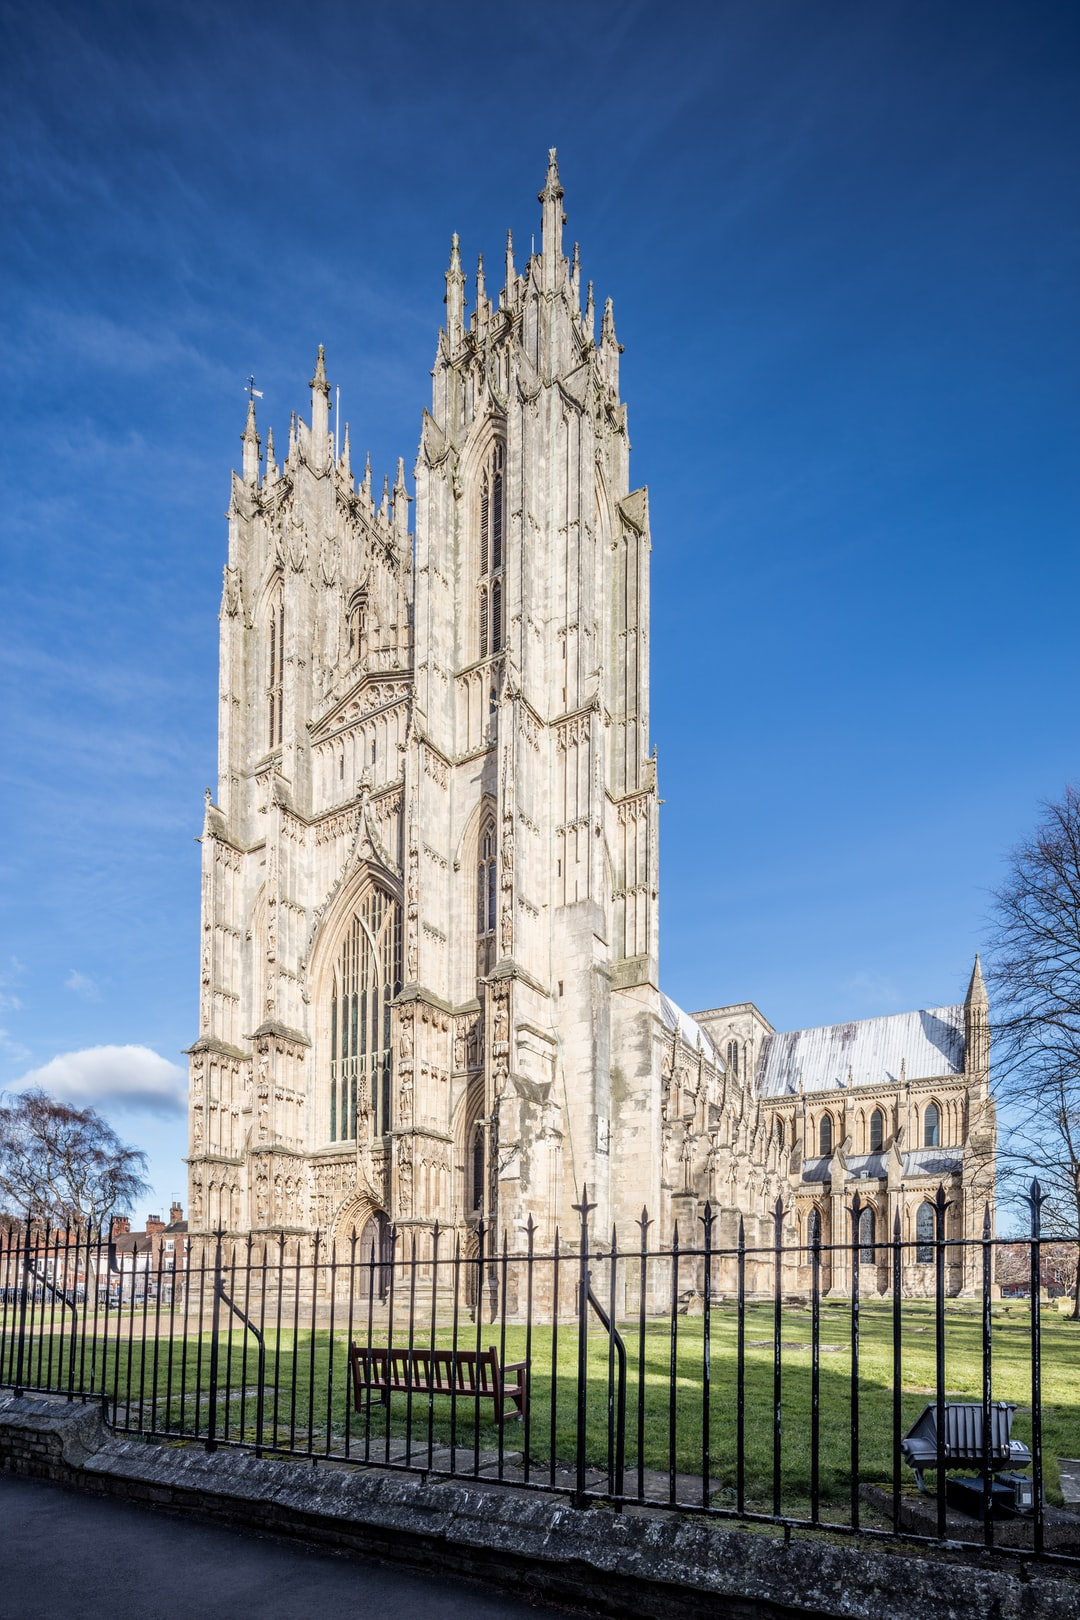 Here is a photograph taken from outside Beverley Minster.  Located in Beverley, Yorkshire, England.  Website : www.michaeldbeckwith.com   Email : michael@michaeldbeckwith.com